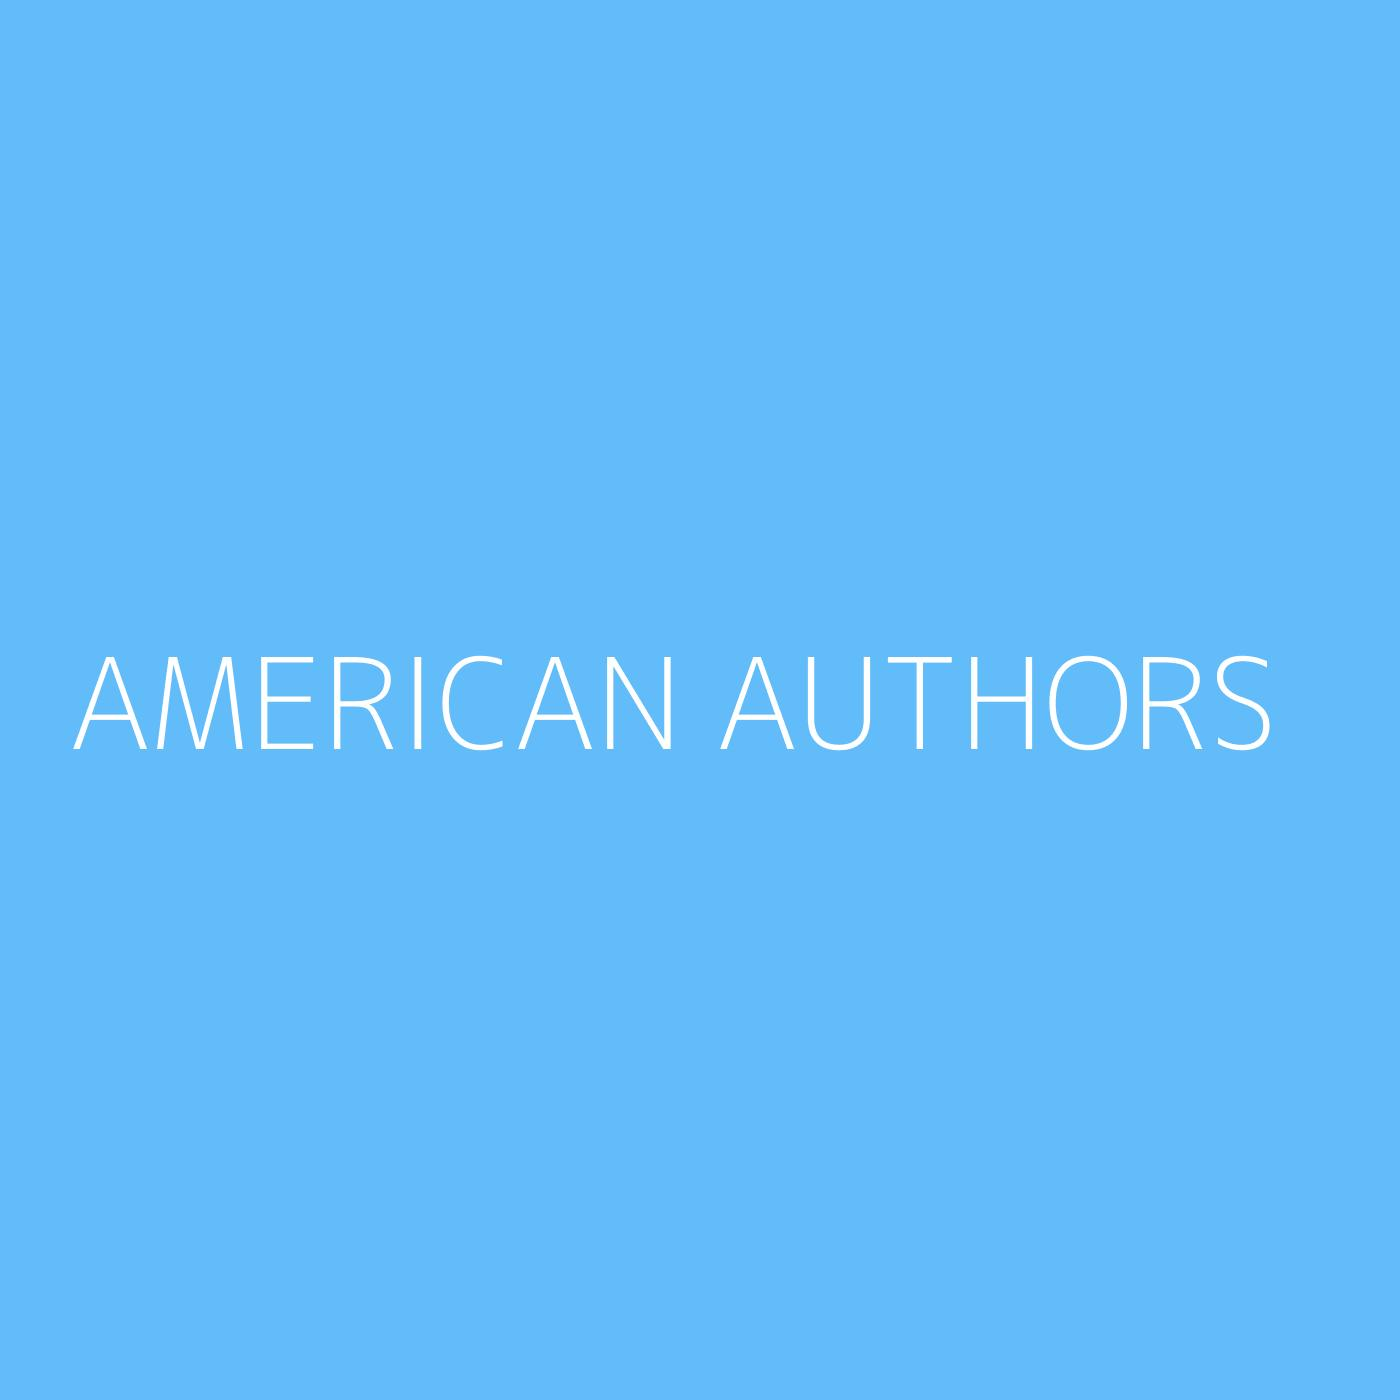 American Authors Playlist Artwork